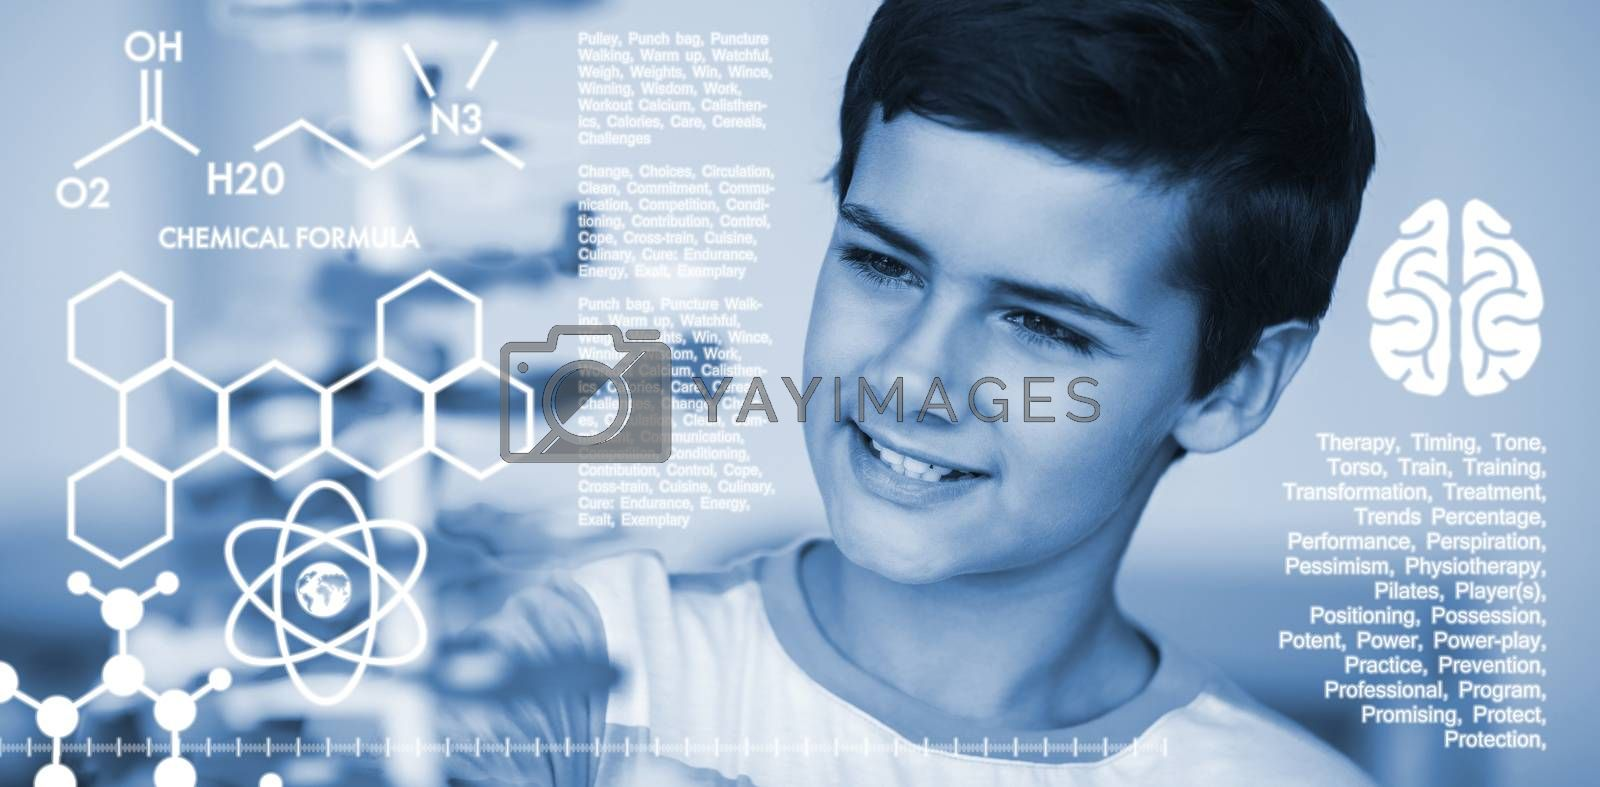 Composite image of graphic image of chemical formulas by Wavebreakmedia